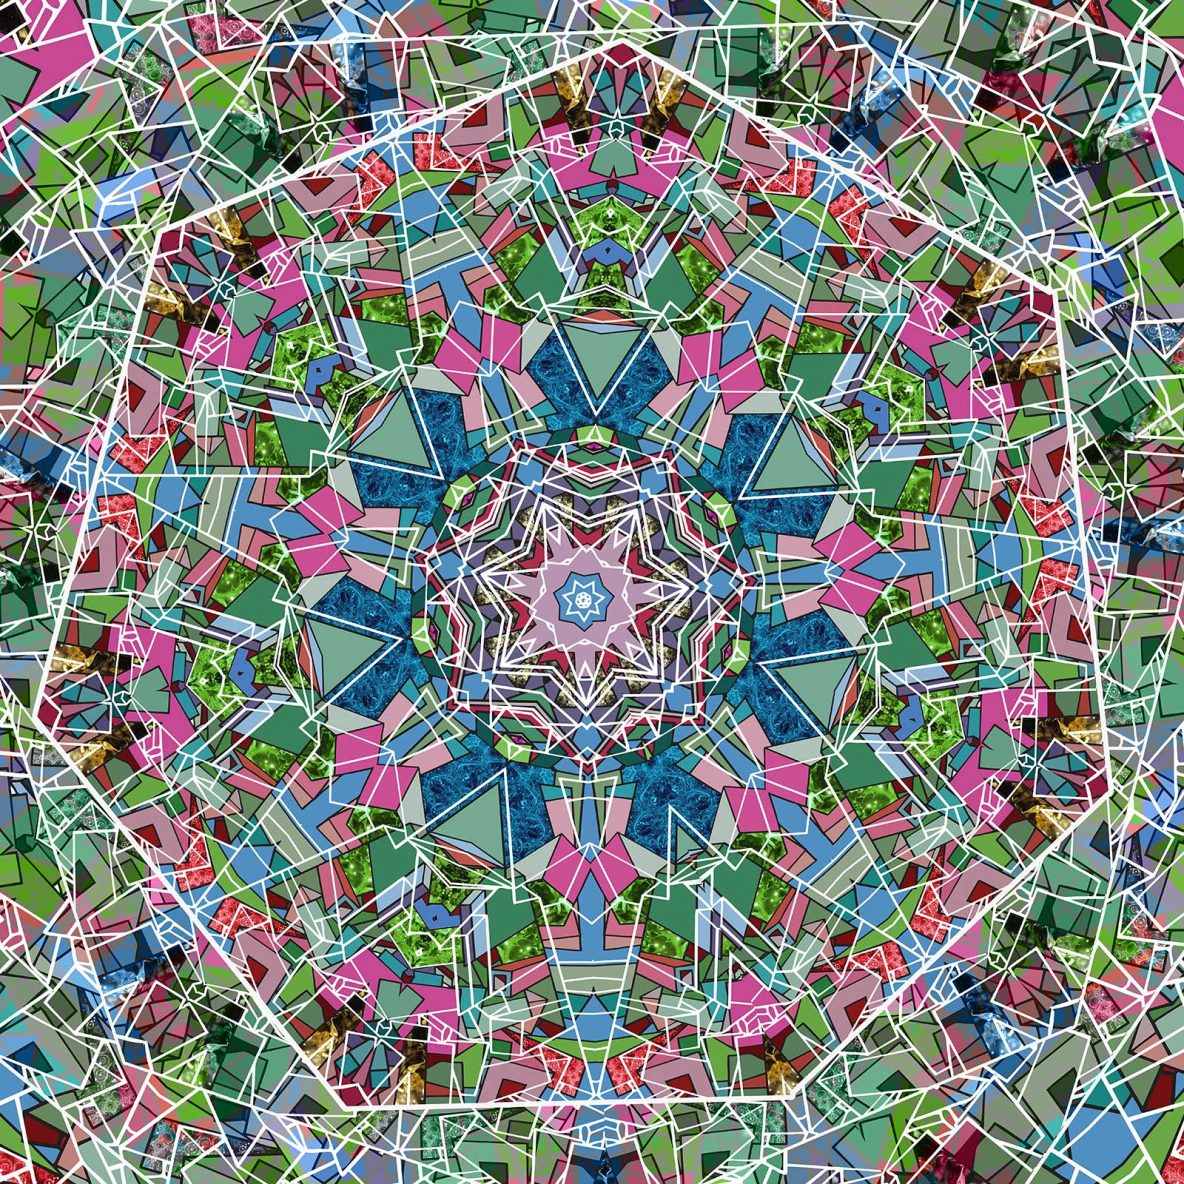 Transient Mandala | © Dex Hannon - All rights reserved (Image)